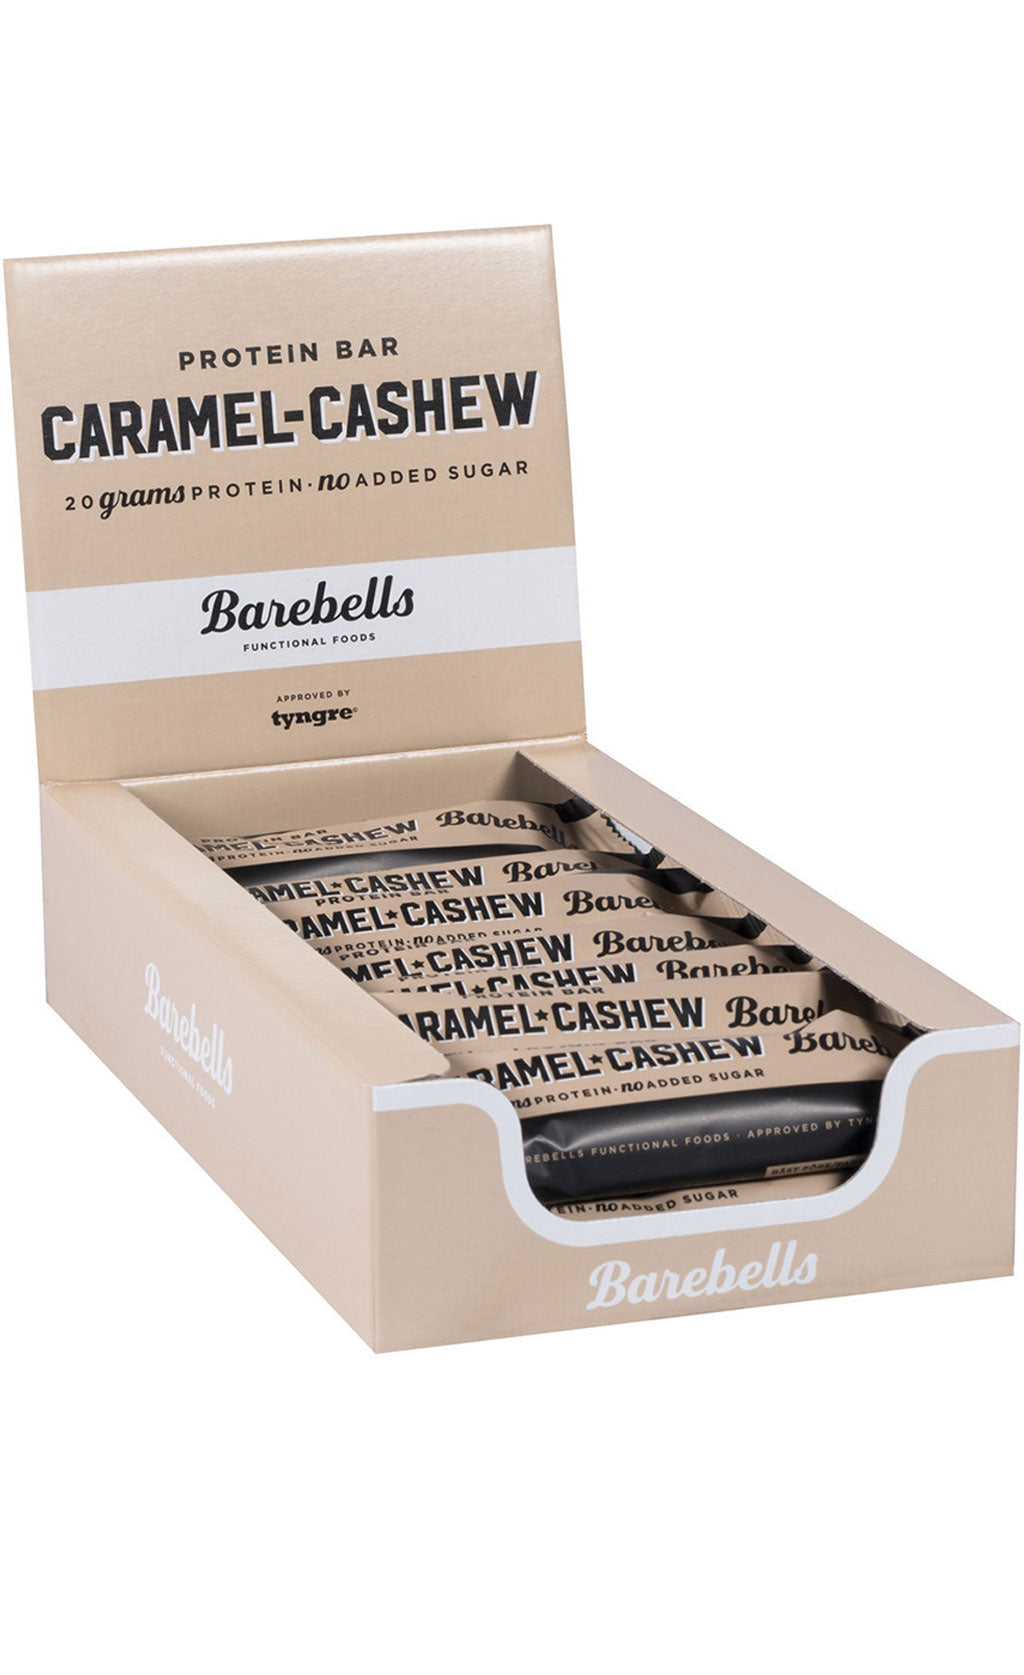 Barebells Protein Bars - 12 Pack ($24* each)